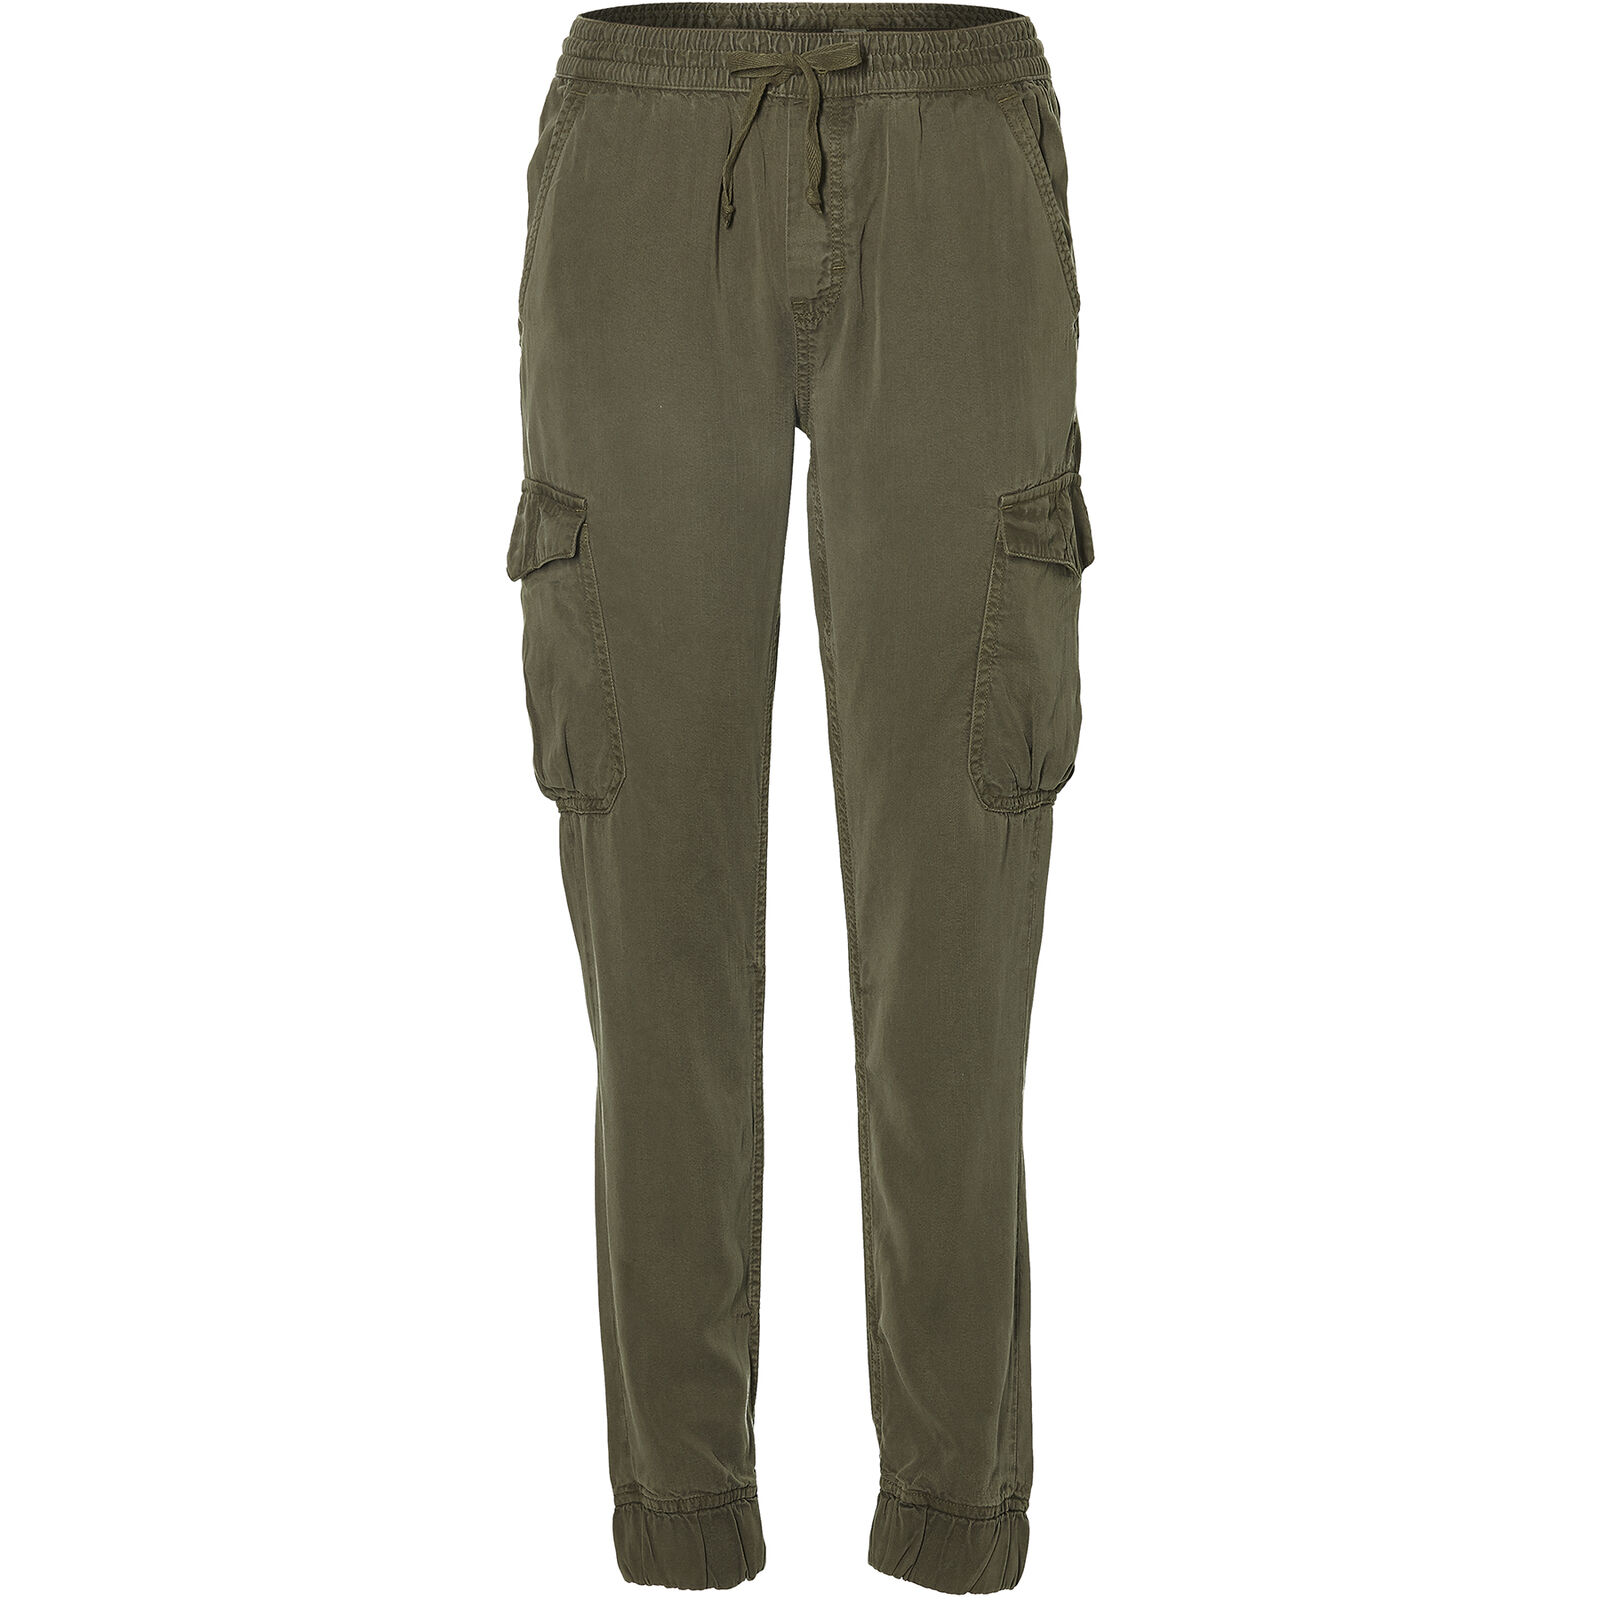 O'Neill Trousers Lw Cargo Pants Dark Green Plain